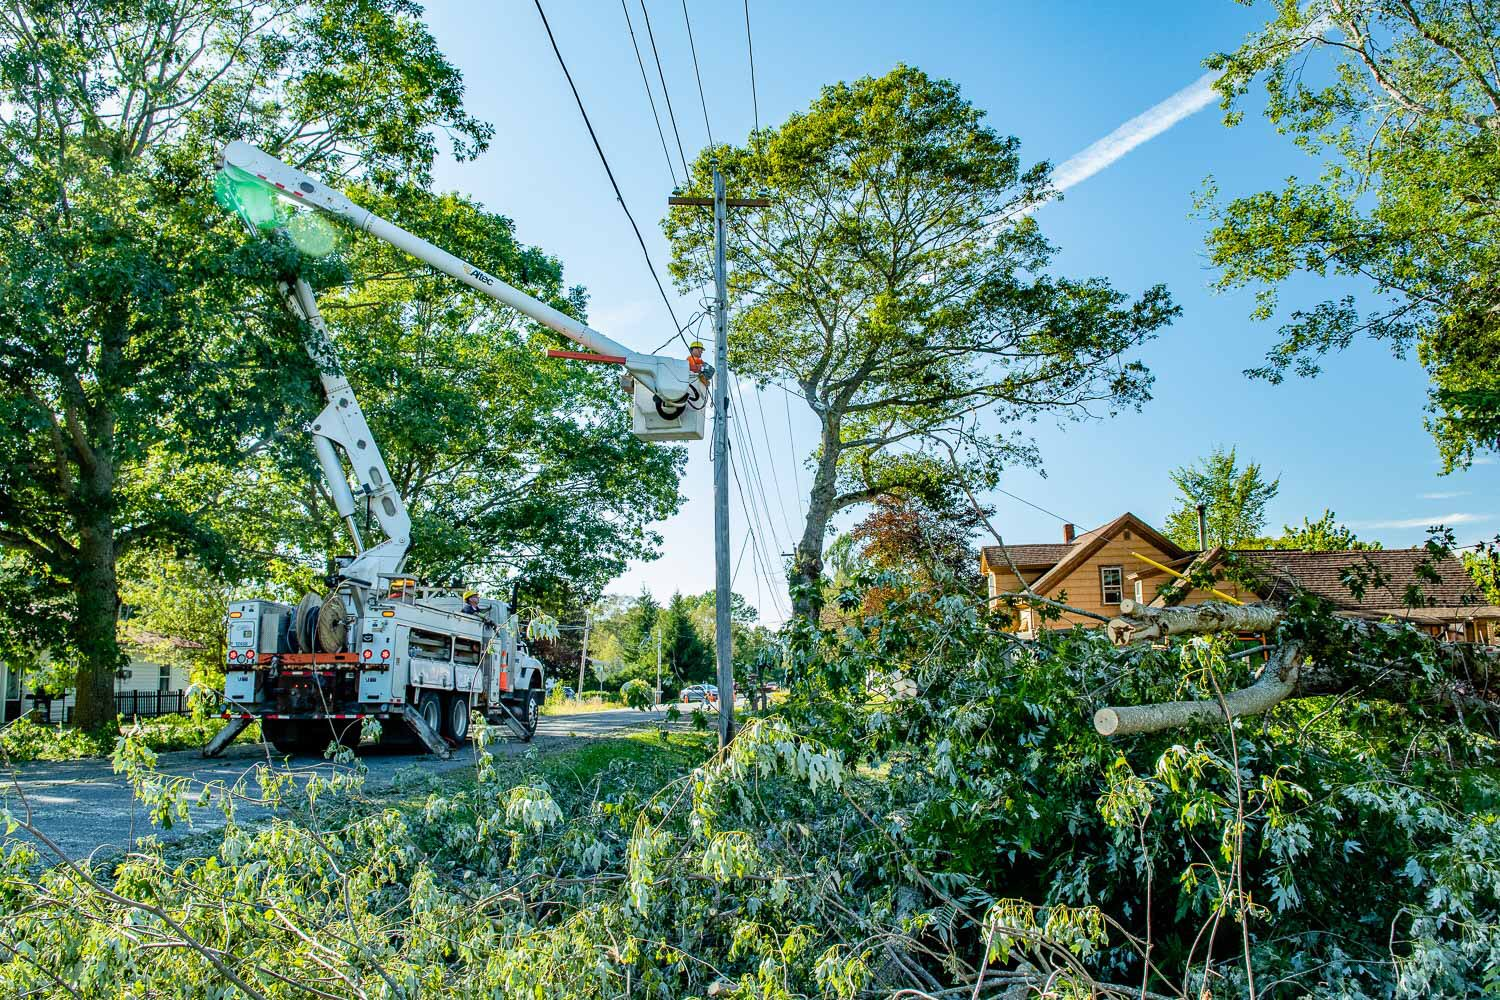 More than 30,000 customers still without power days after Dorian